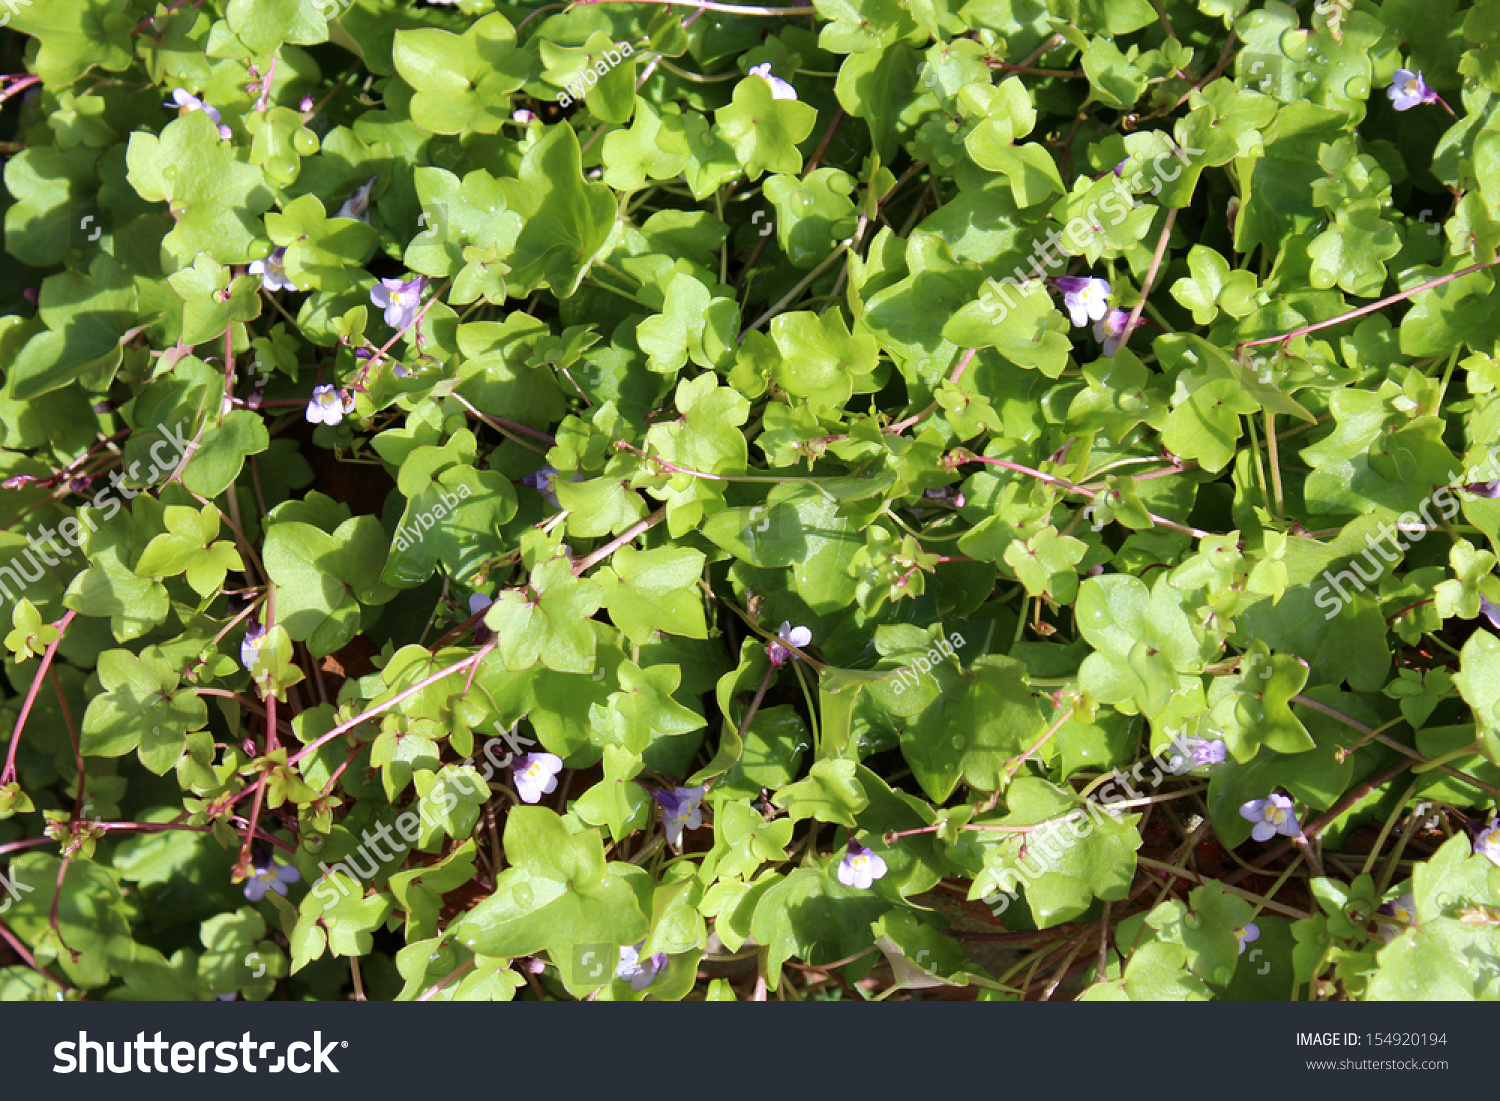 Dainty ground cover plant tiny pale stock photo edit now 154920194 dainty ground cover plant with tiny pale blue flowers kenilworth ivy cymbalaria muralis is perfect for izmirmasajfo